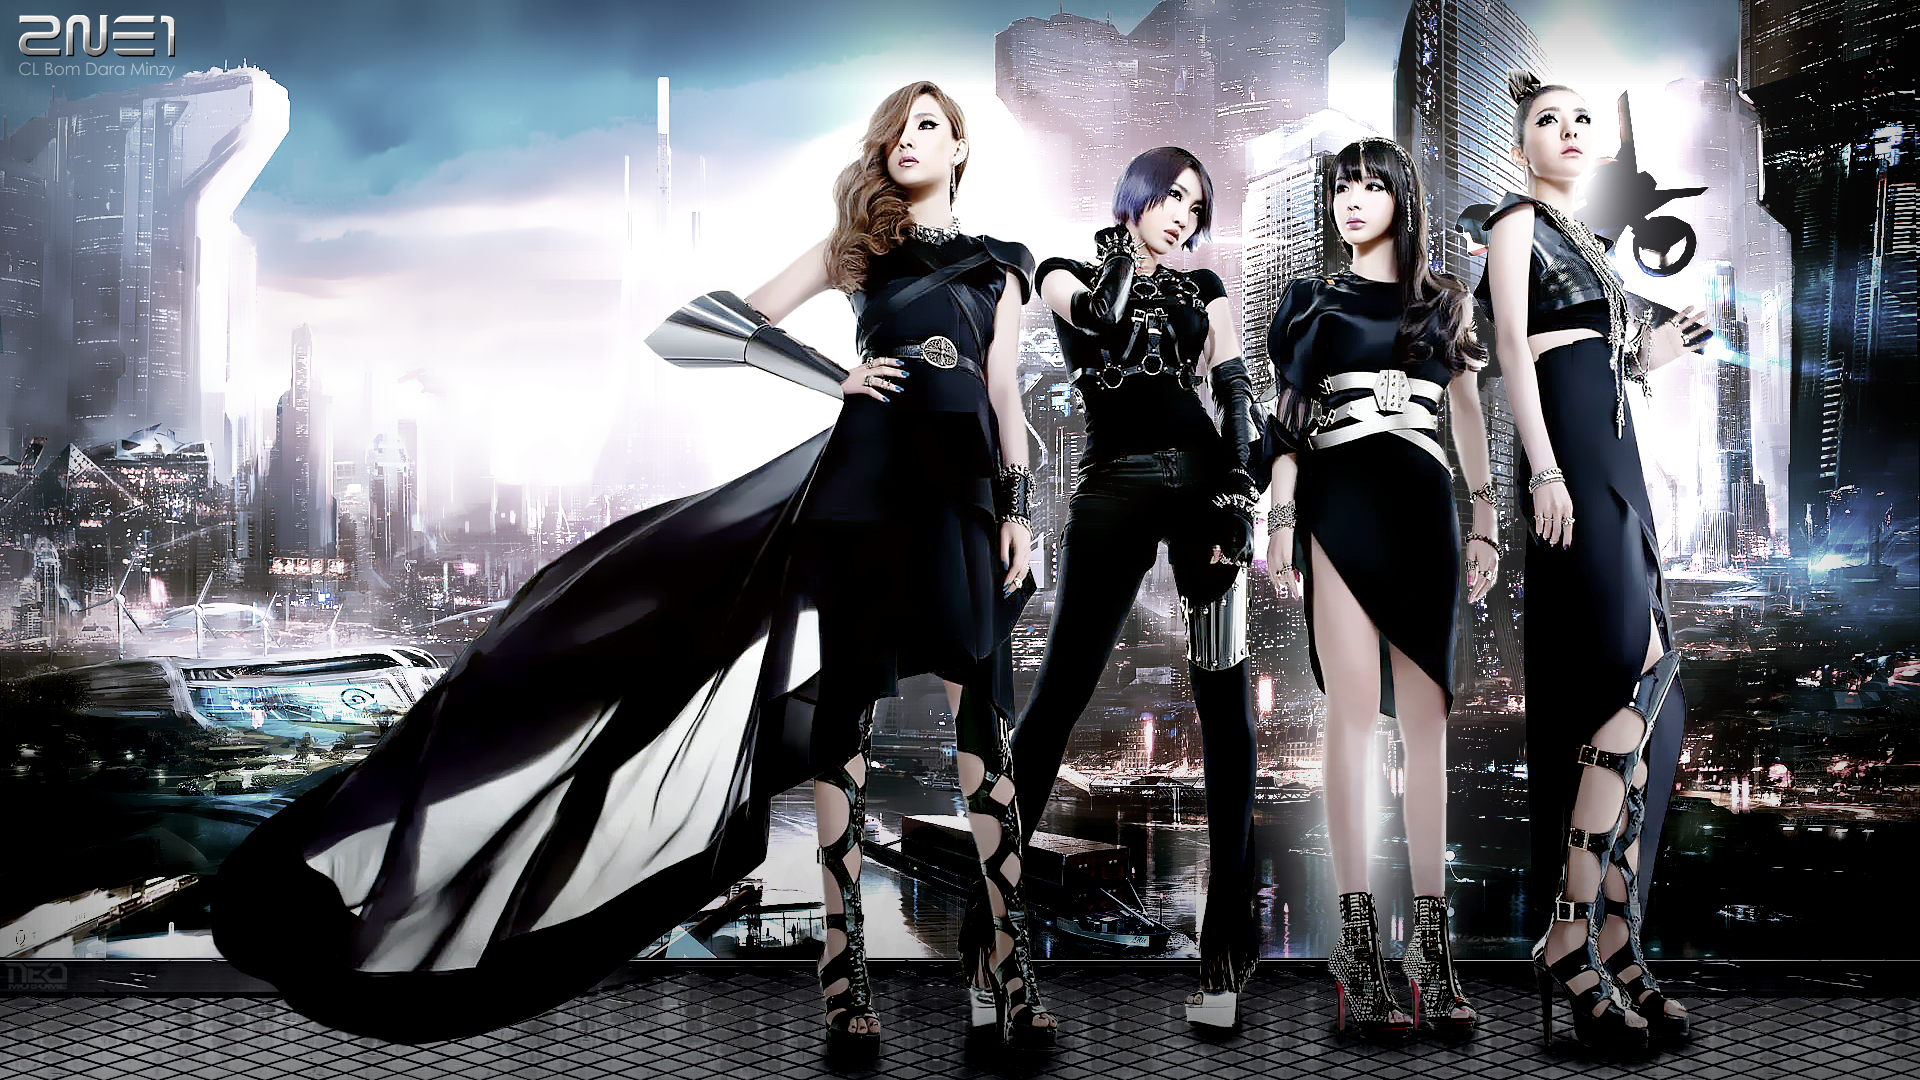 2ne1 Wallpaper Hd 2ne1 Wallpapers Hd Pixelstalk Net